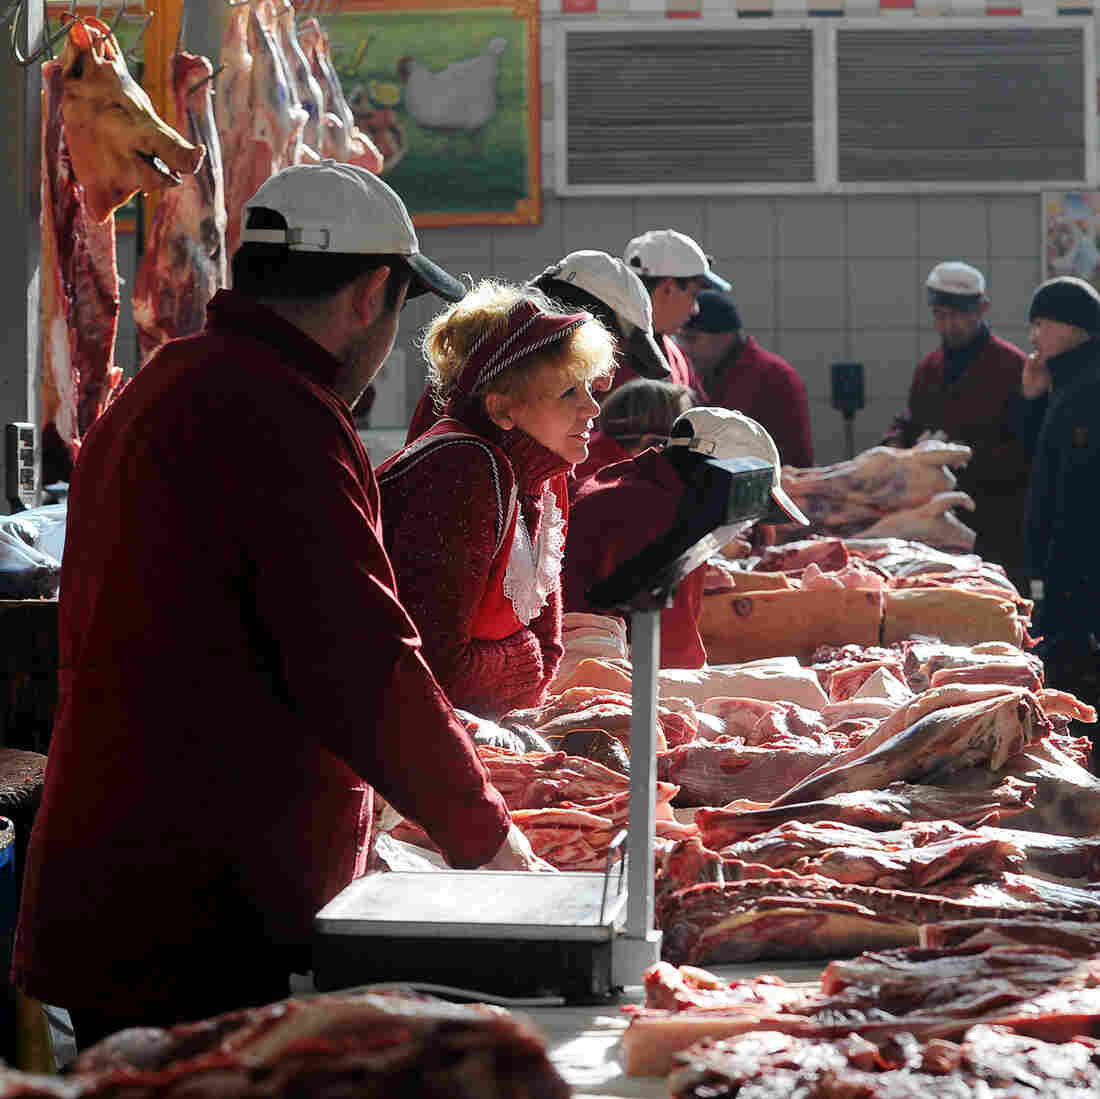 Why Russia Is Saying 'Nyet' To U.S. Meat Imports